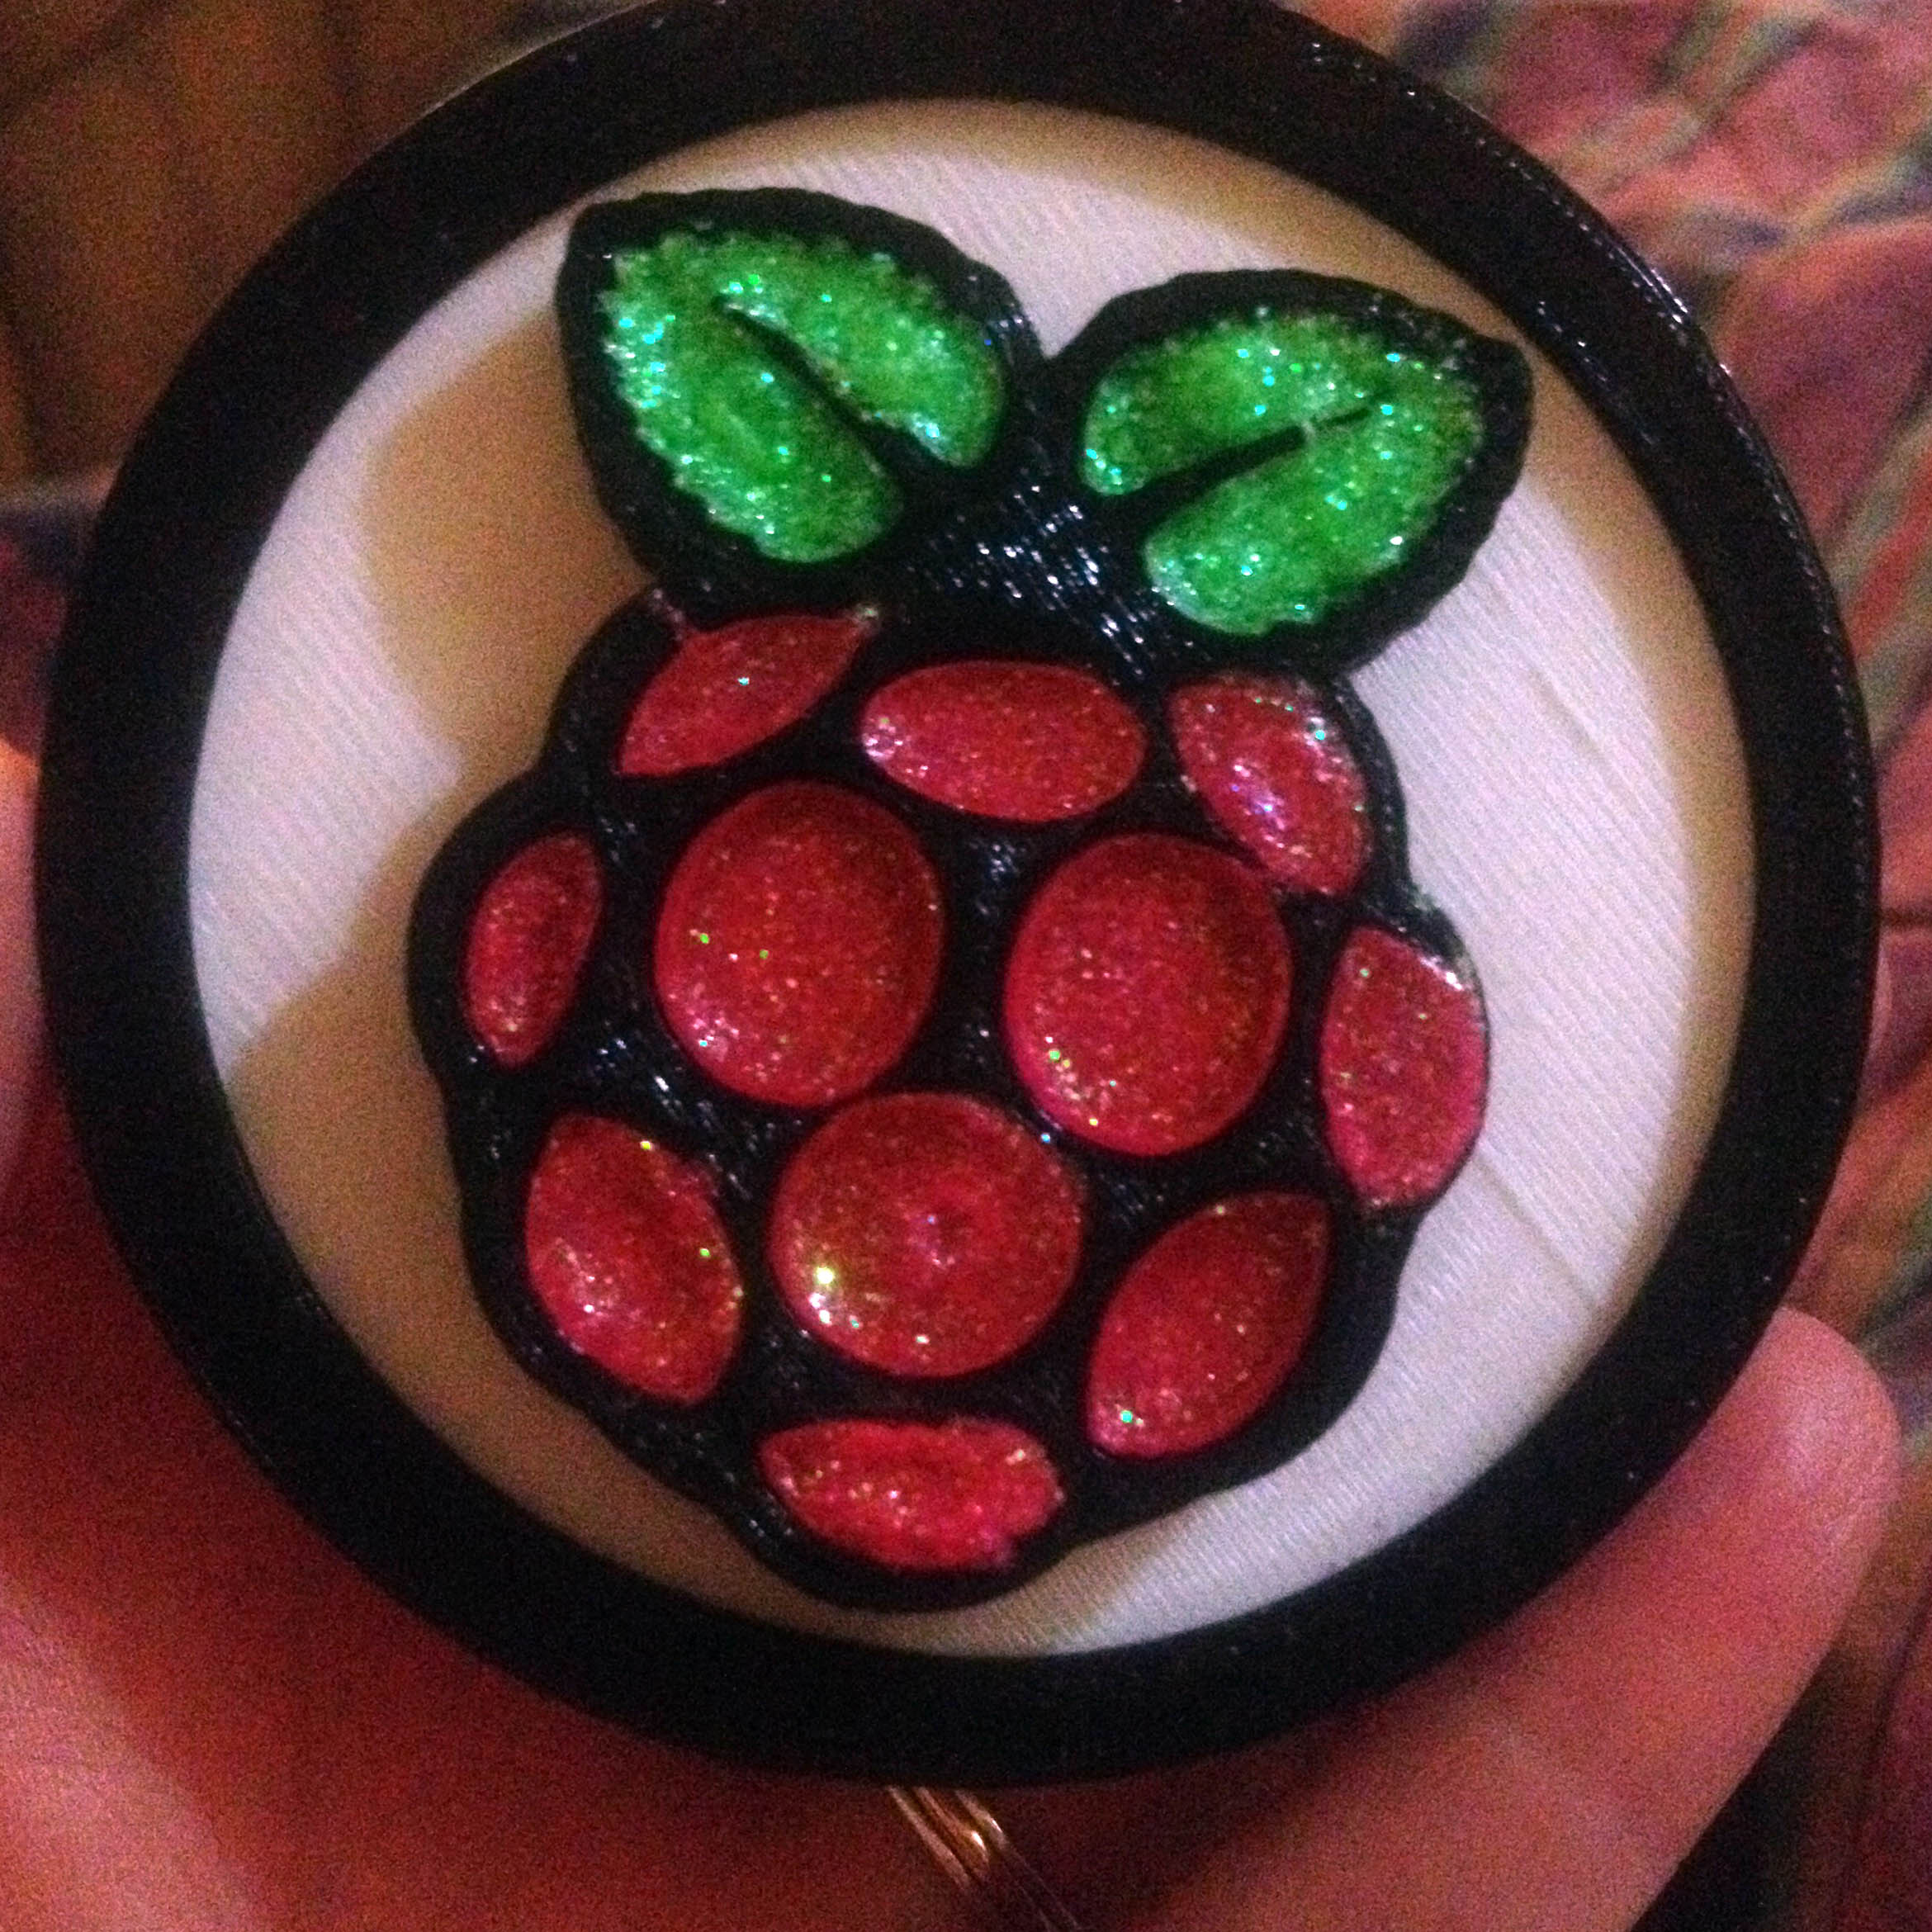 First place medal for winning the Raspberry Pi Bake Off competition at Hendrix College.